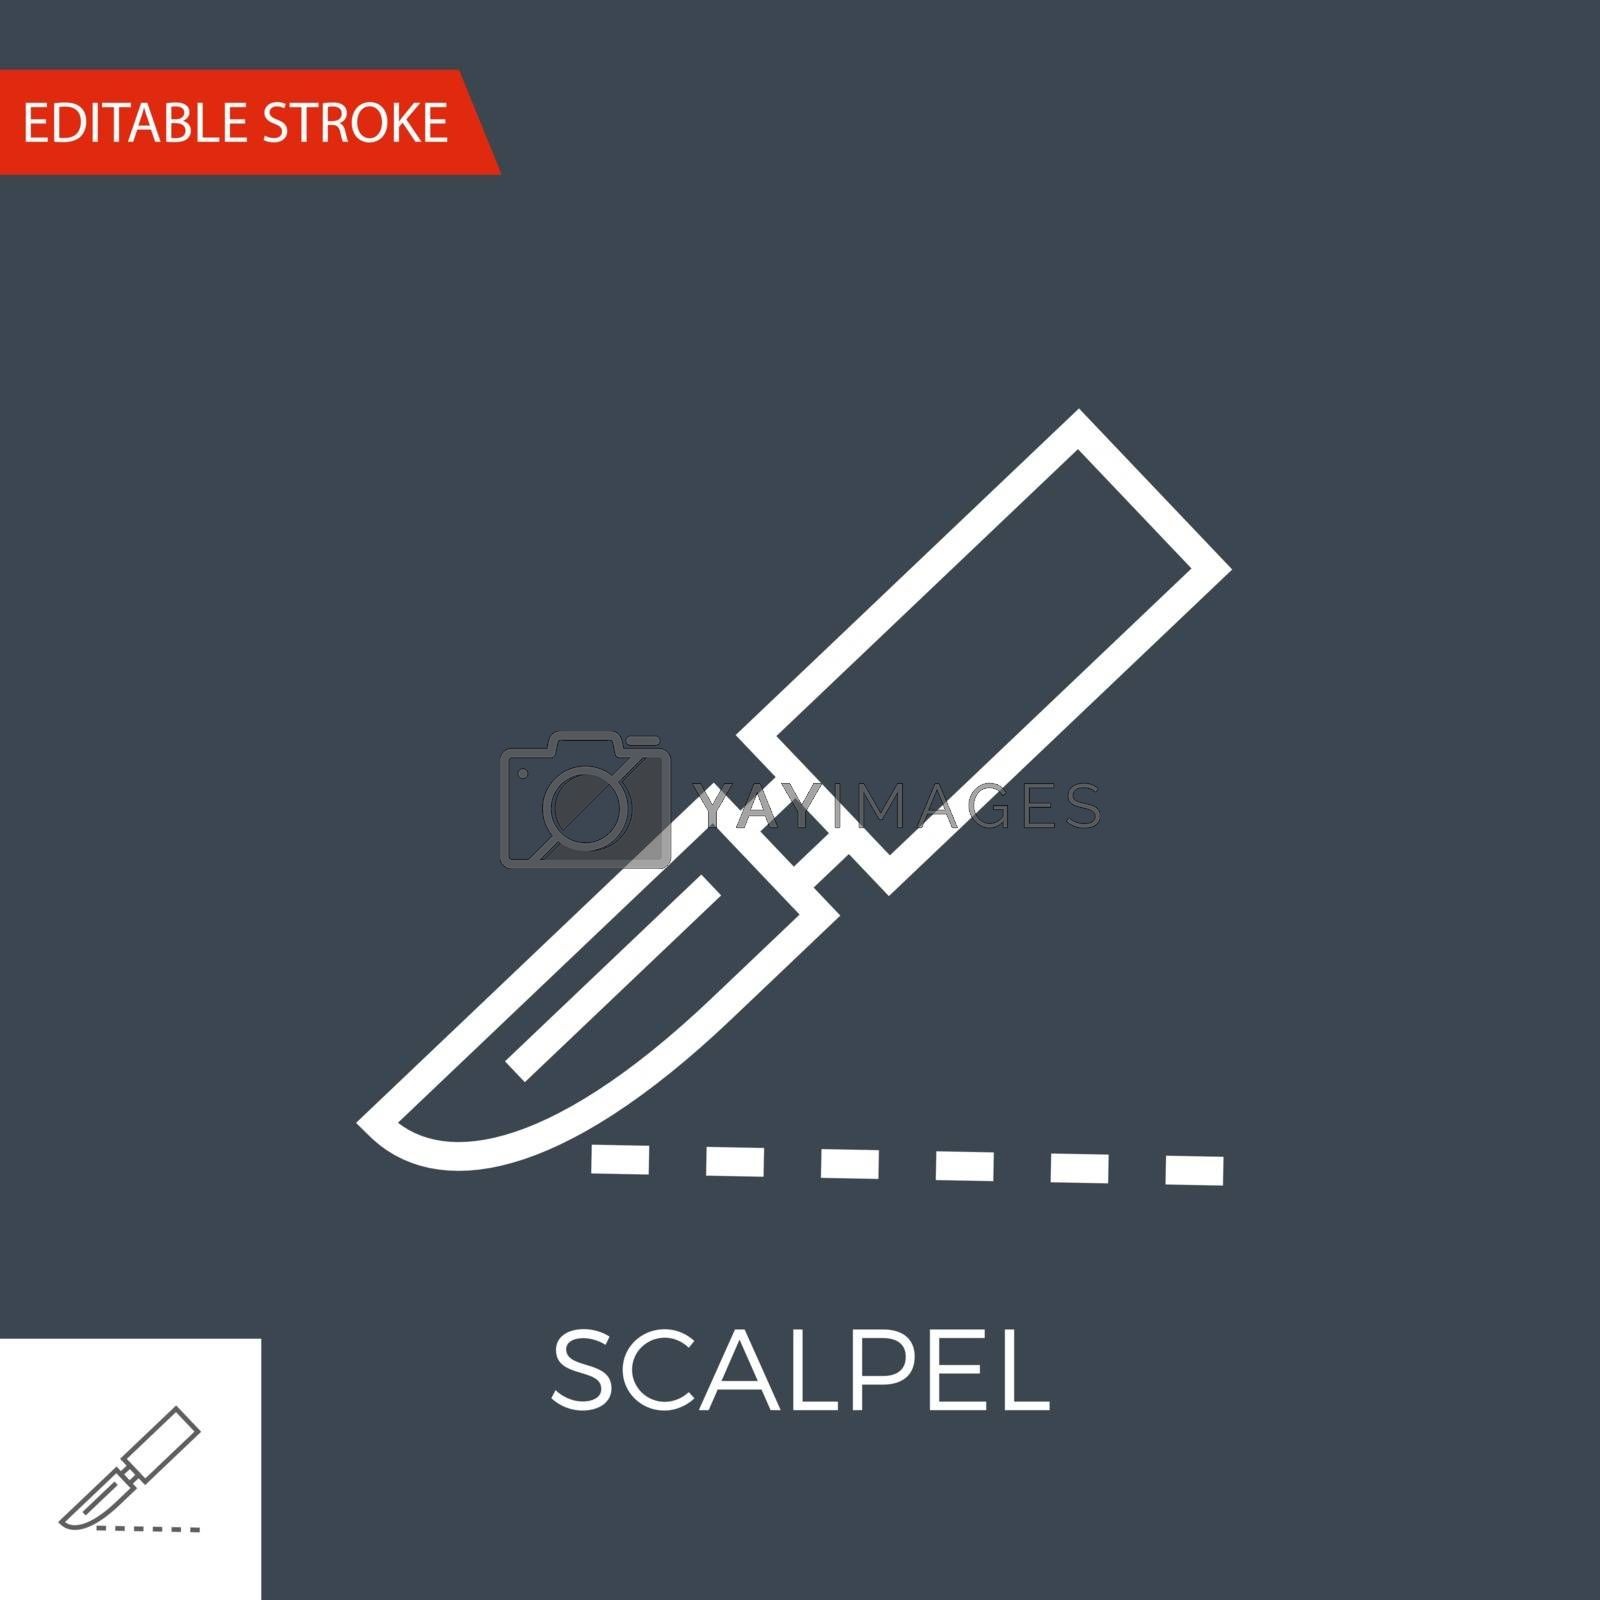 Scalpel Thin Line Vector Icon. Flat Icon Isolated on the Black Background. Editable Stroke EPS file. Vector illustration.